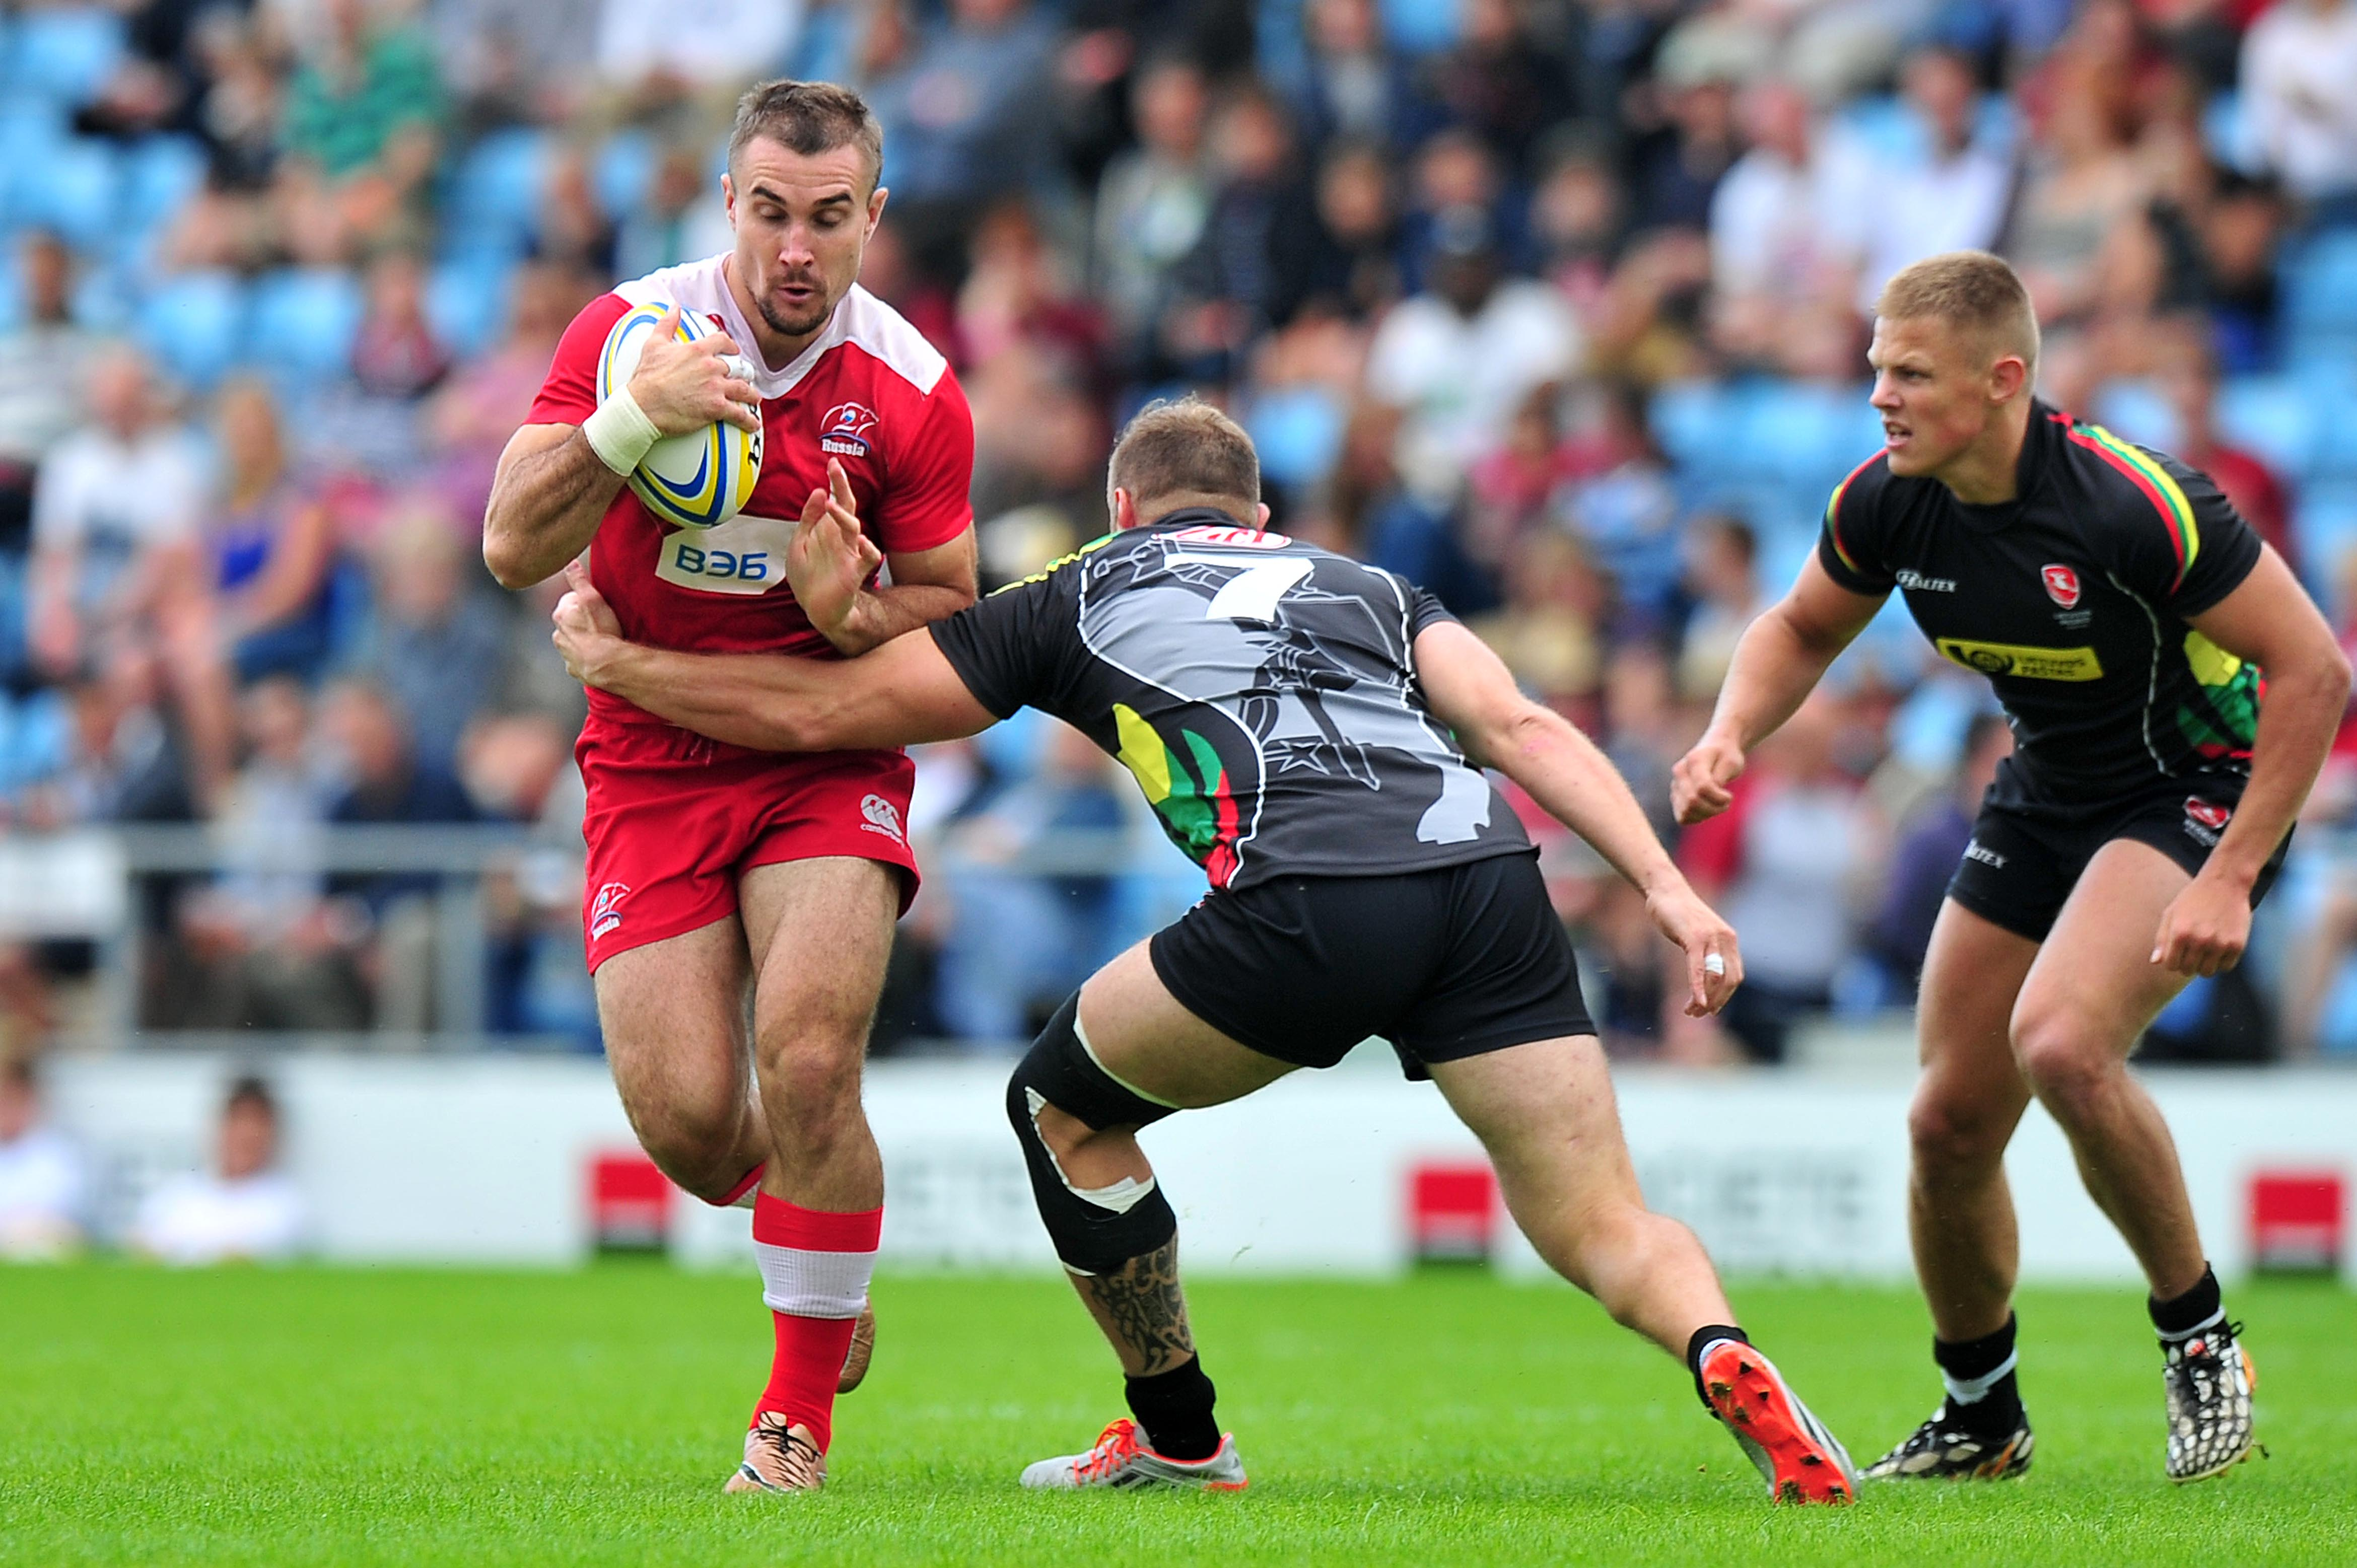 Vladmir Ostroushko of Russia is tackled by Justinas Vasiliauskas of Lithuania - Photo mandatory by-line: Tom Sandberg/Pinnacle/RFU - Tel: +44(0)1363 881025 - Mobile:0797 1270 681 - 09/07/16 - Sport - Rugby - Rugby Europe 7s Grand Prix  - Mitsubishi Motors Exeter 7s - Russia v Lithuania - Sandy Park, Exeter, Devon